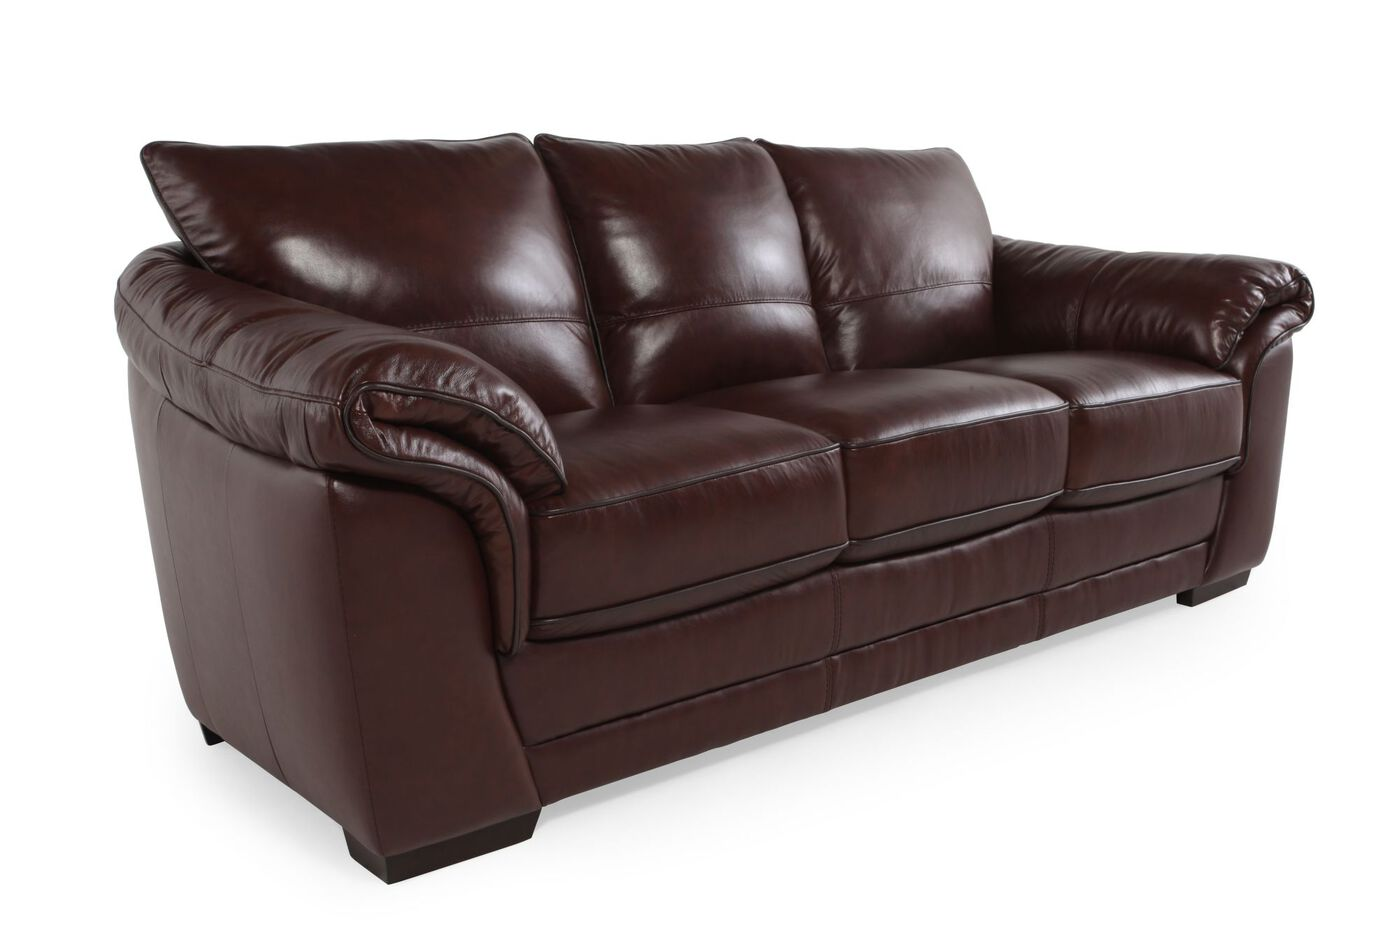 Violino Apollo Leather Sofa Mathis Brothers Furniture